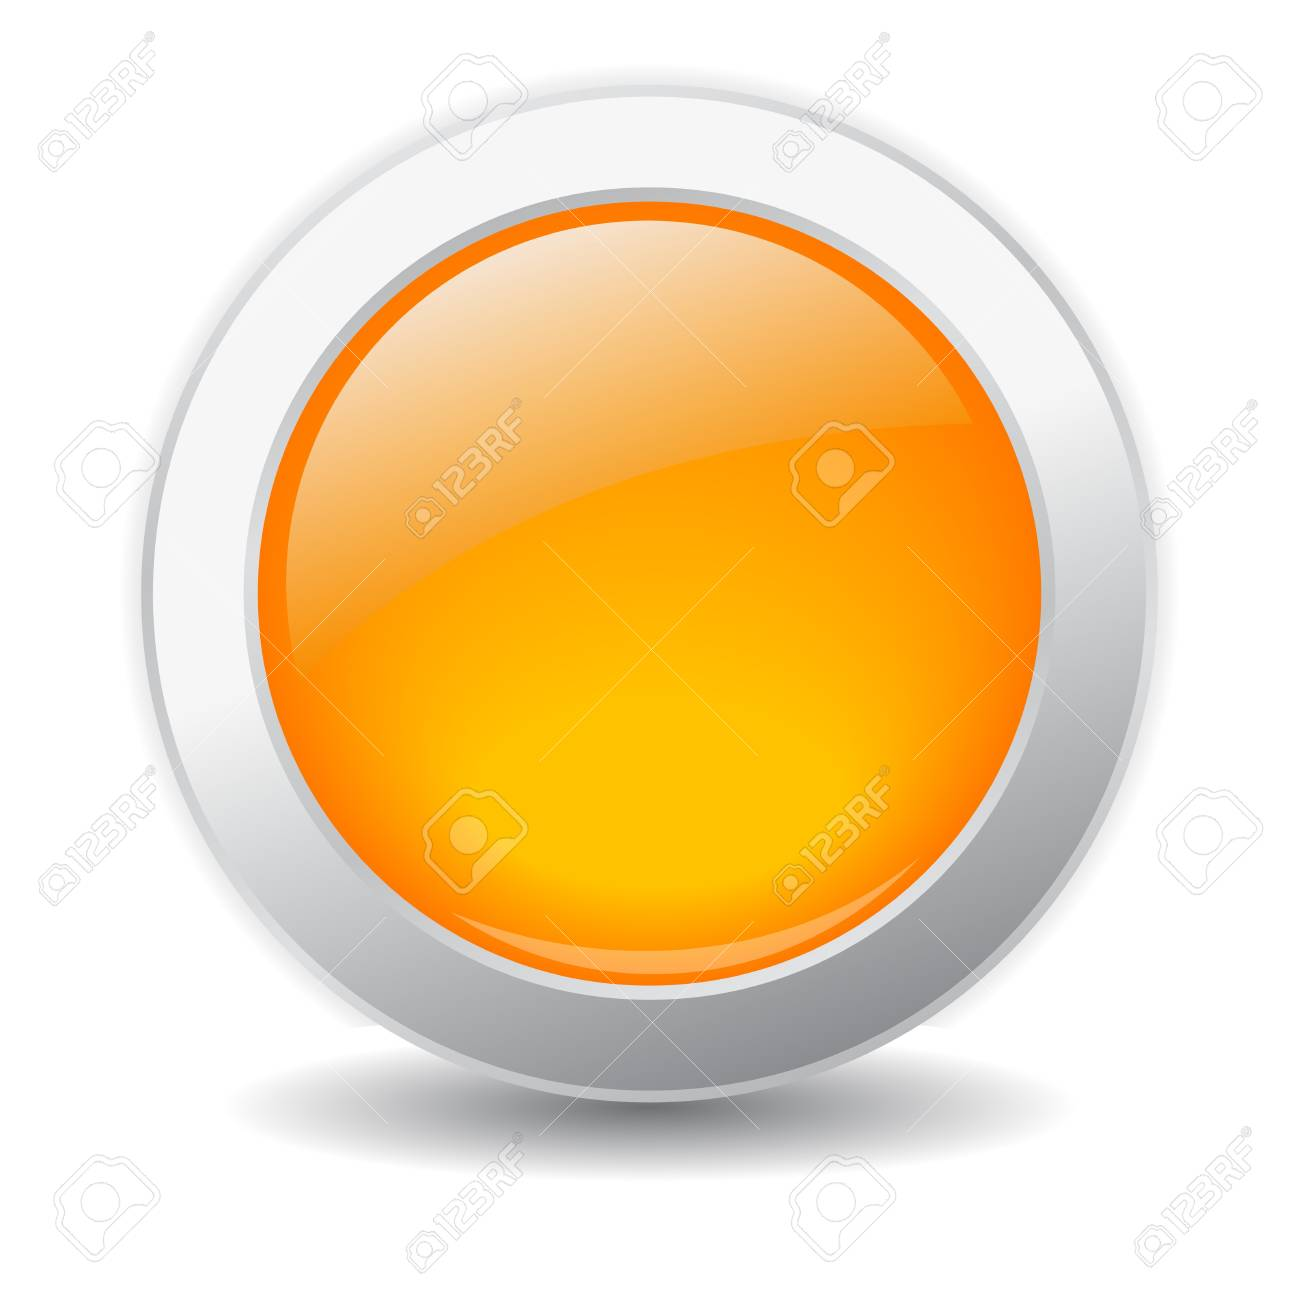 Glossy button illustration Stock Vector - 21550195